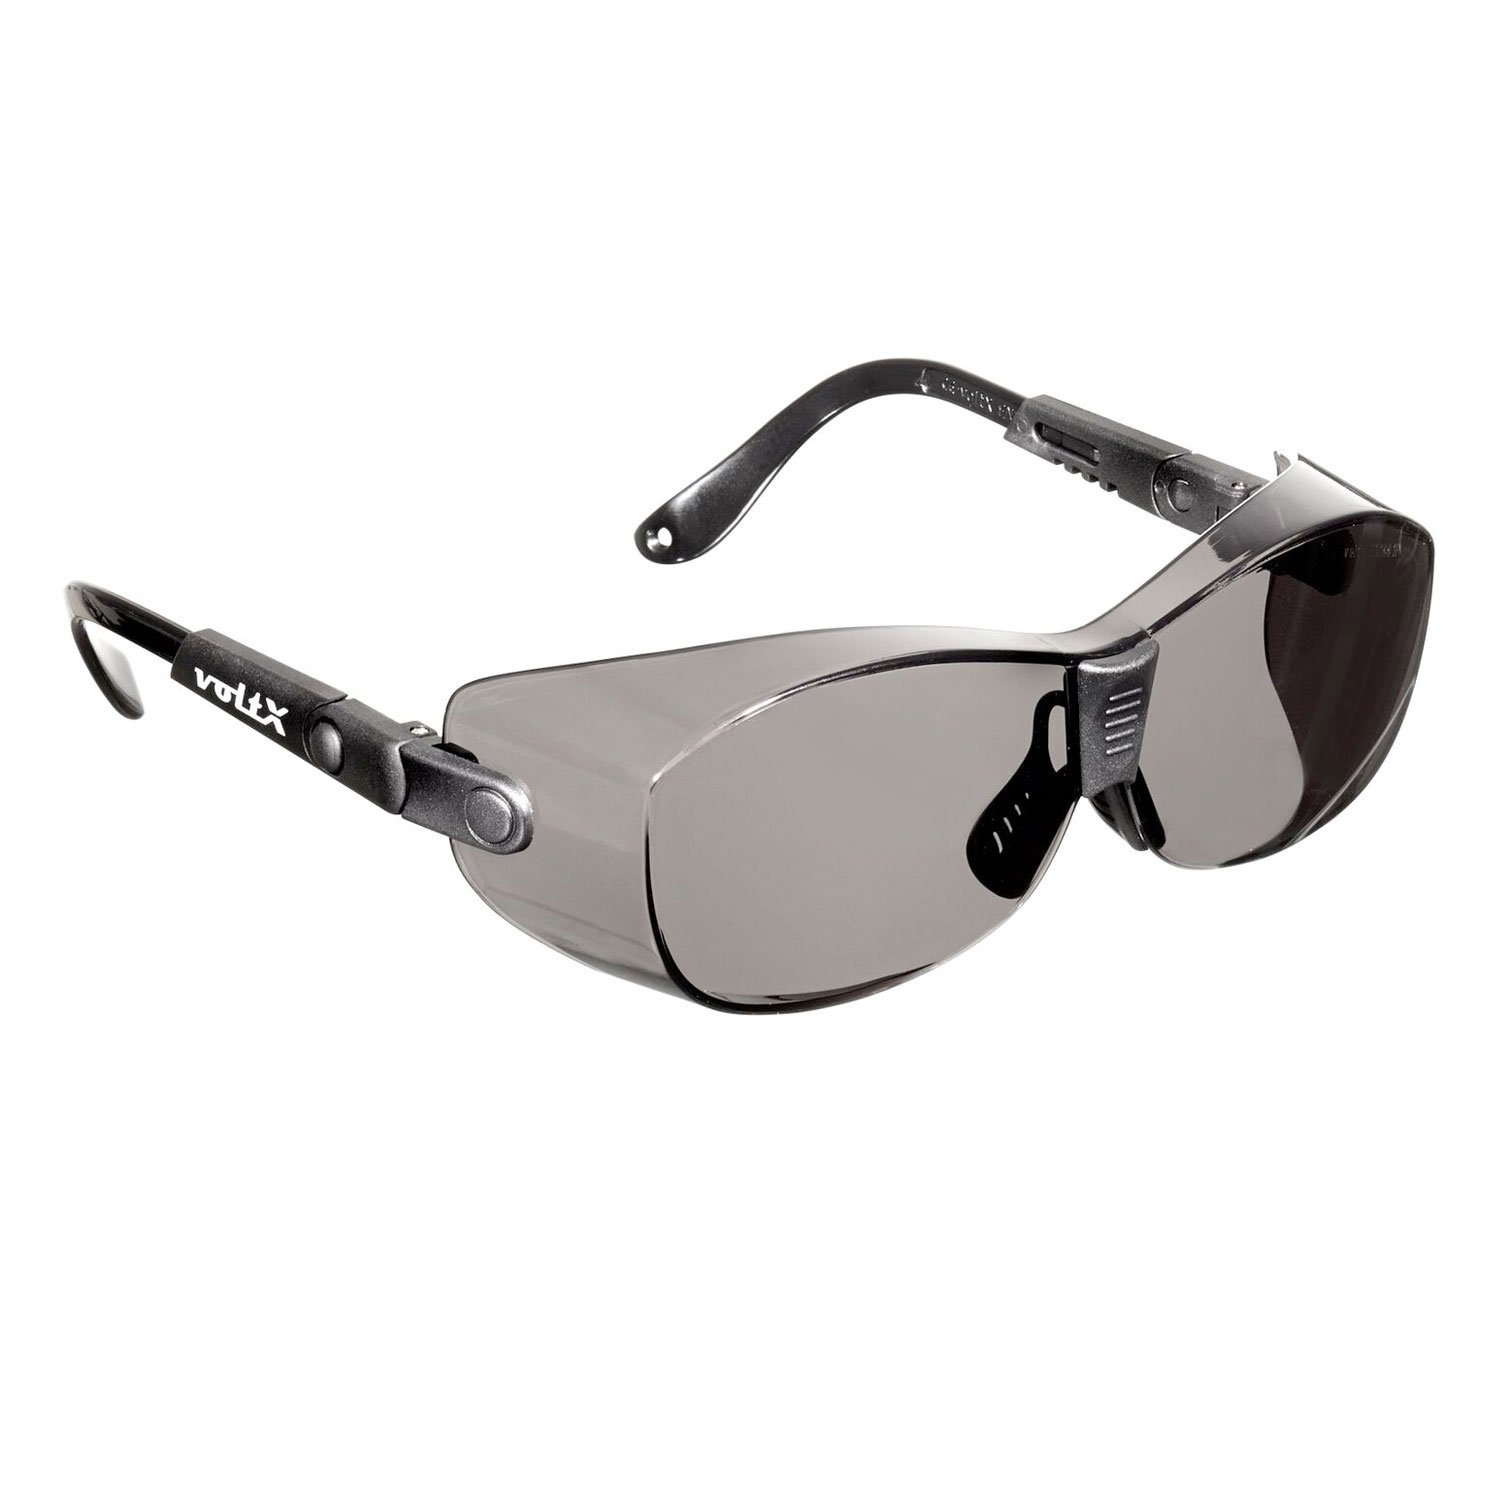 voltX 'RETRO SAFETY OVERGLASSES' – Suitable as FITOVERS for SMALL/MEDIUM size spectacle frames – Can also be worn as regular safety glasses. CE EN166ft certified (Clear Lens) StraightLines